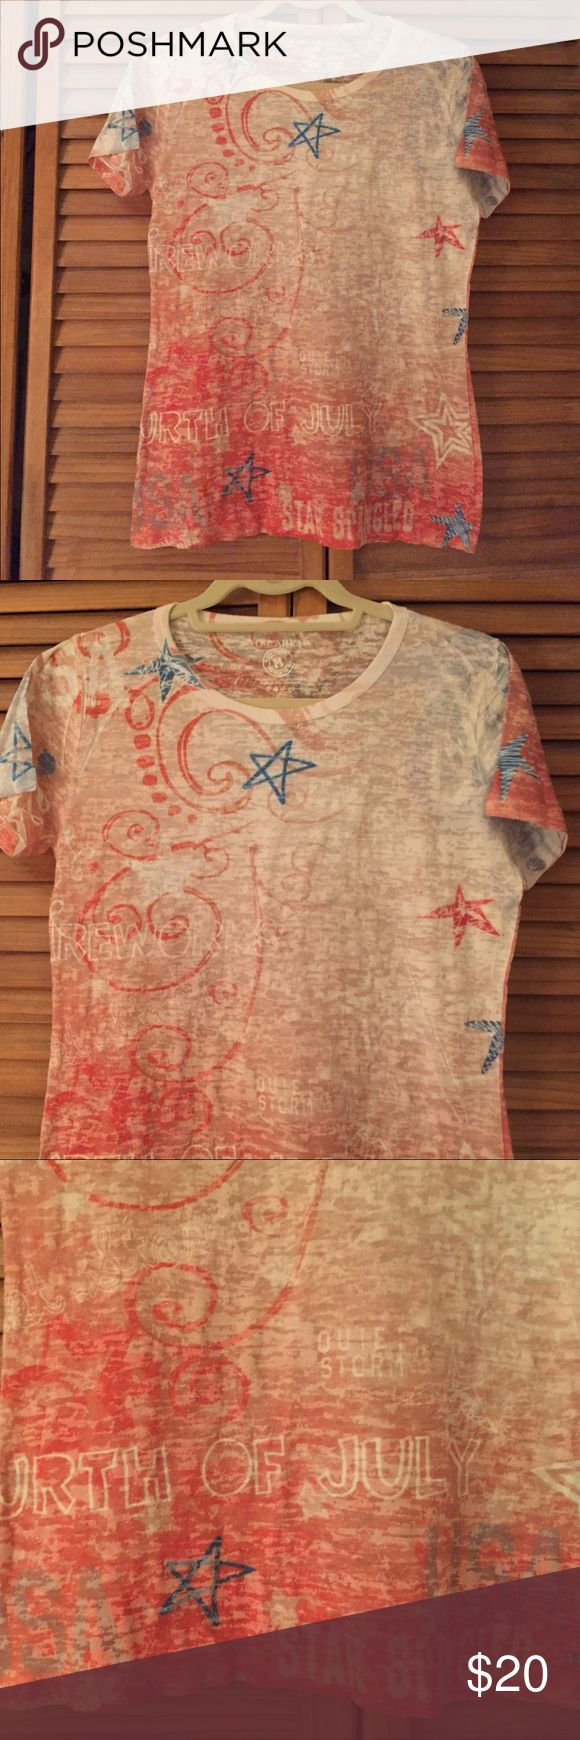 Quiet Storm 4th of July burnout tee Burnout weight festive Tee! Excellent condition Quiet Storm Tops Tees - Short Sleeve